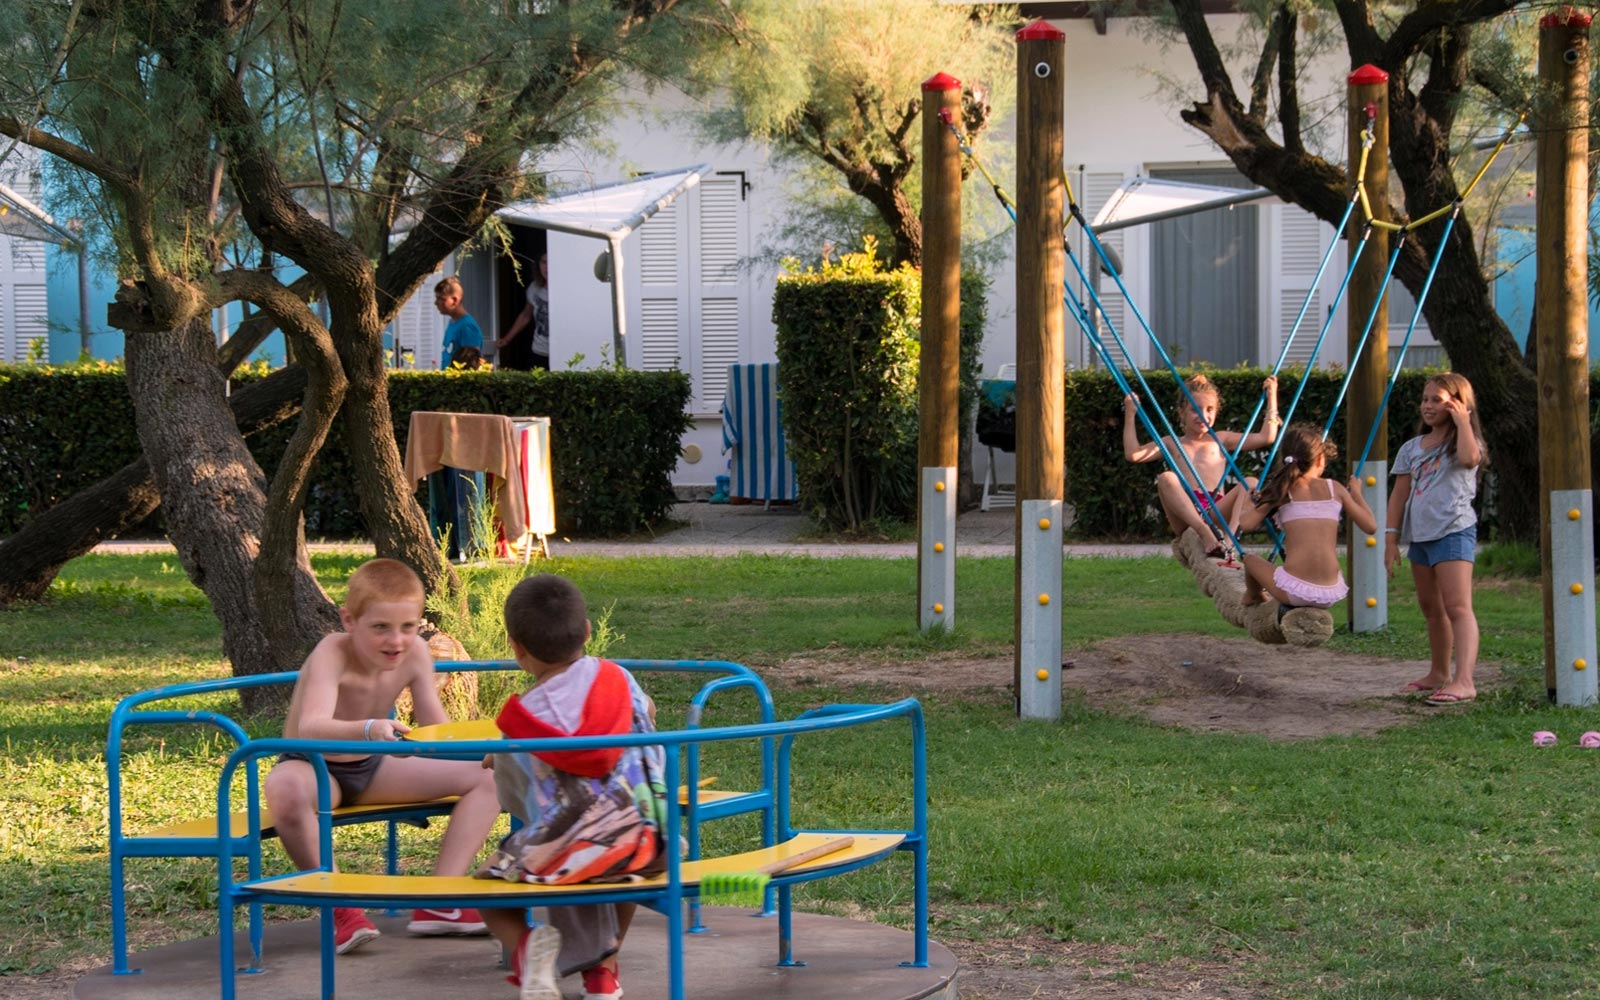 02-Playground-Park-Gallanti